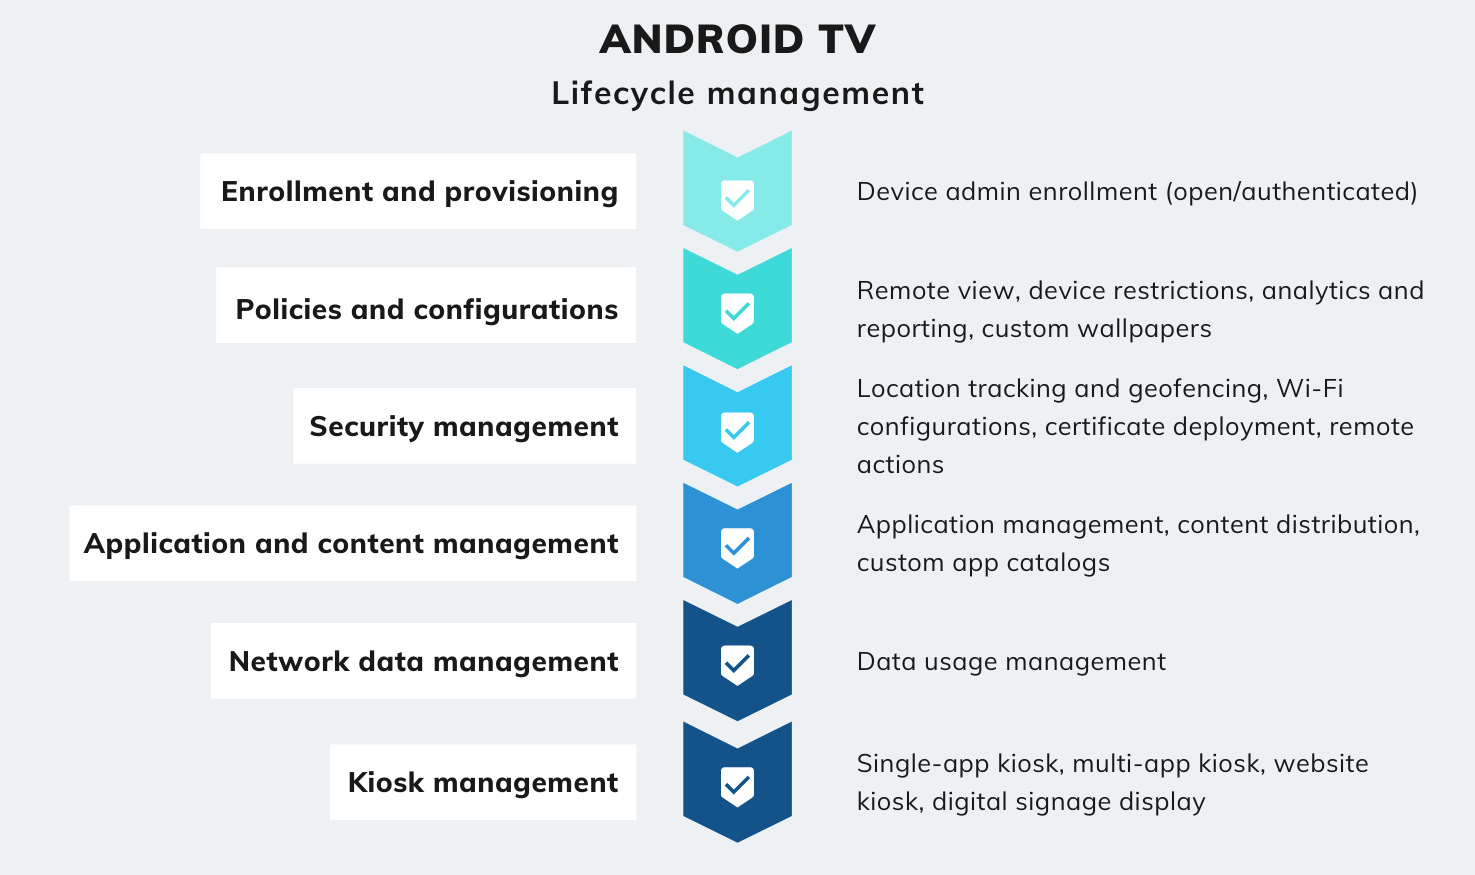 Android TV lifecycle management